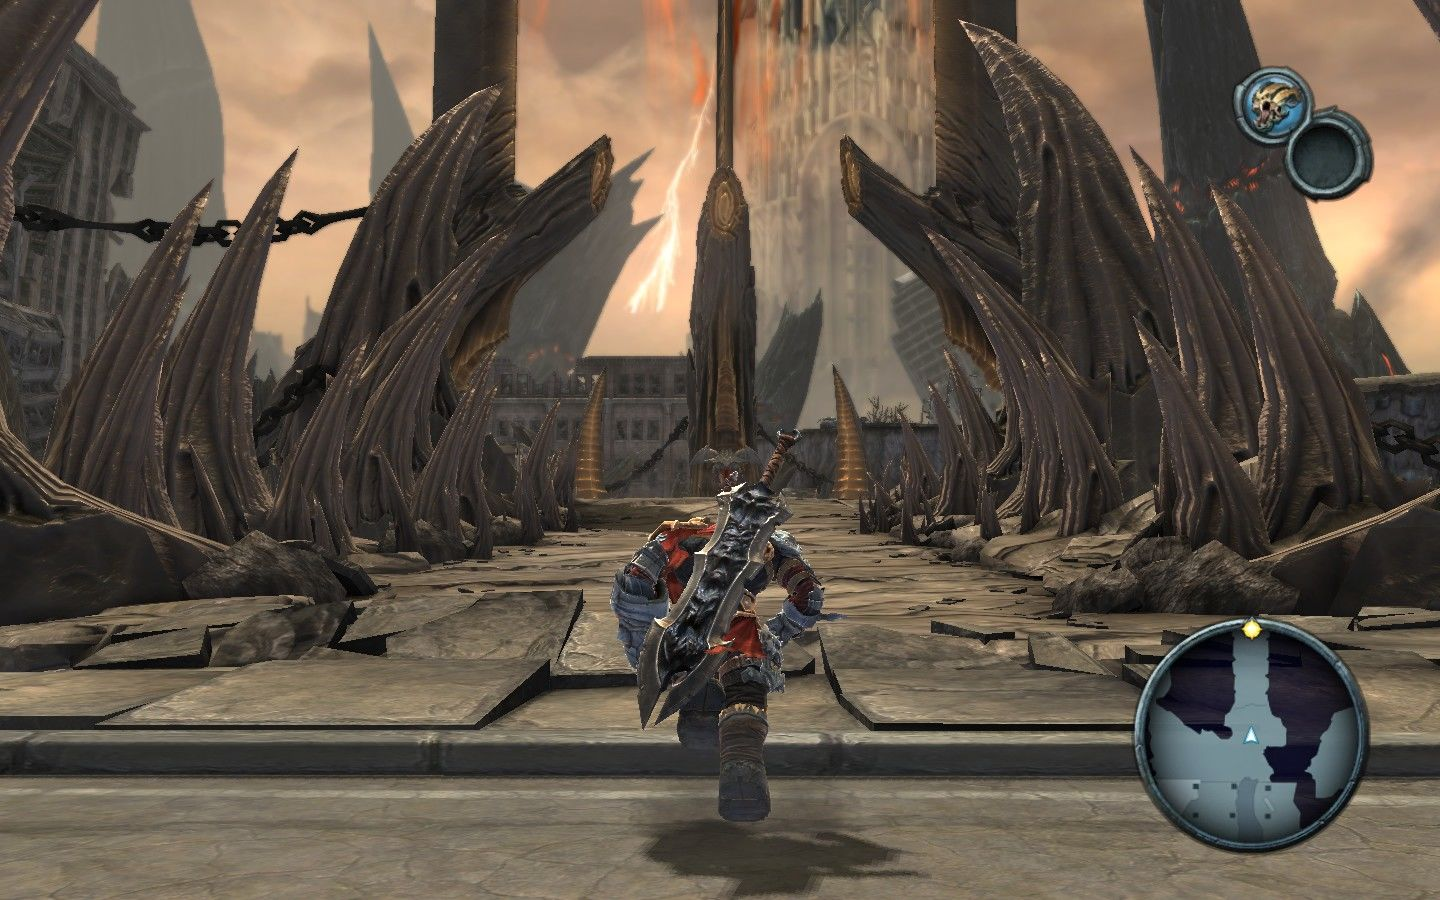 Darksiders Windows Earth has been redecorated with exquisite style.